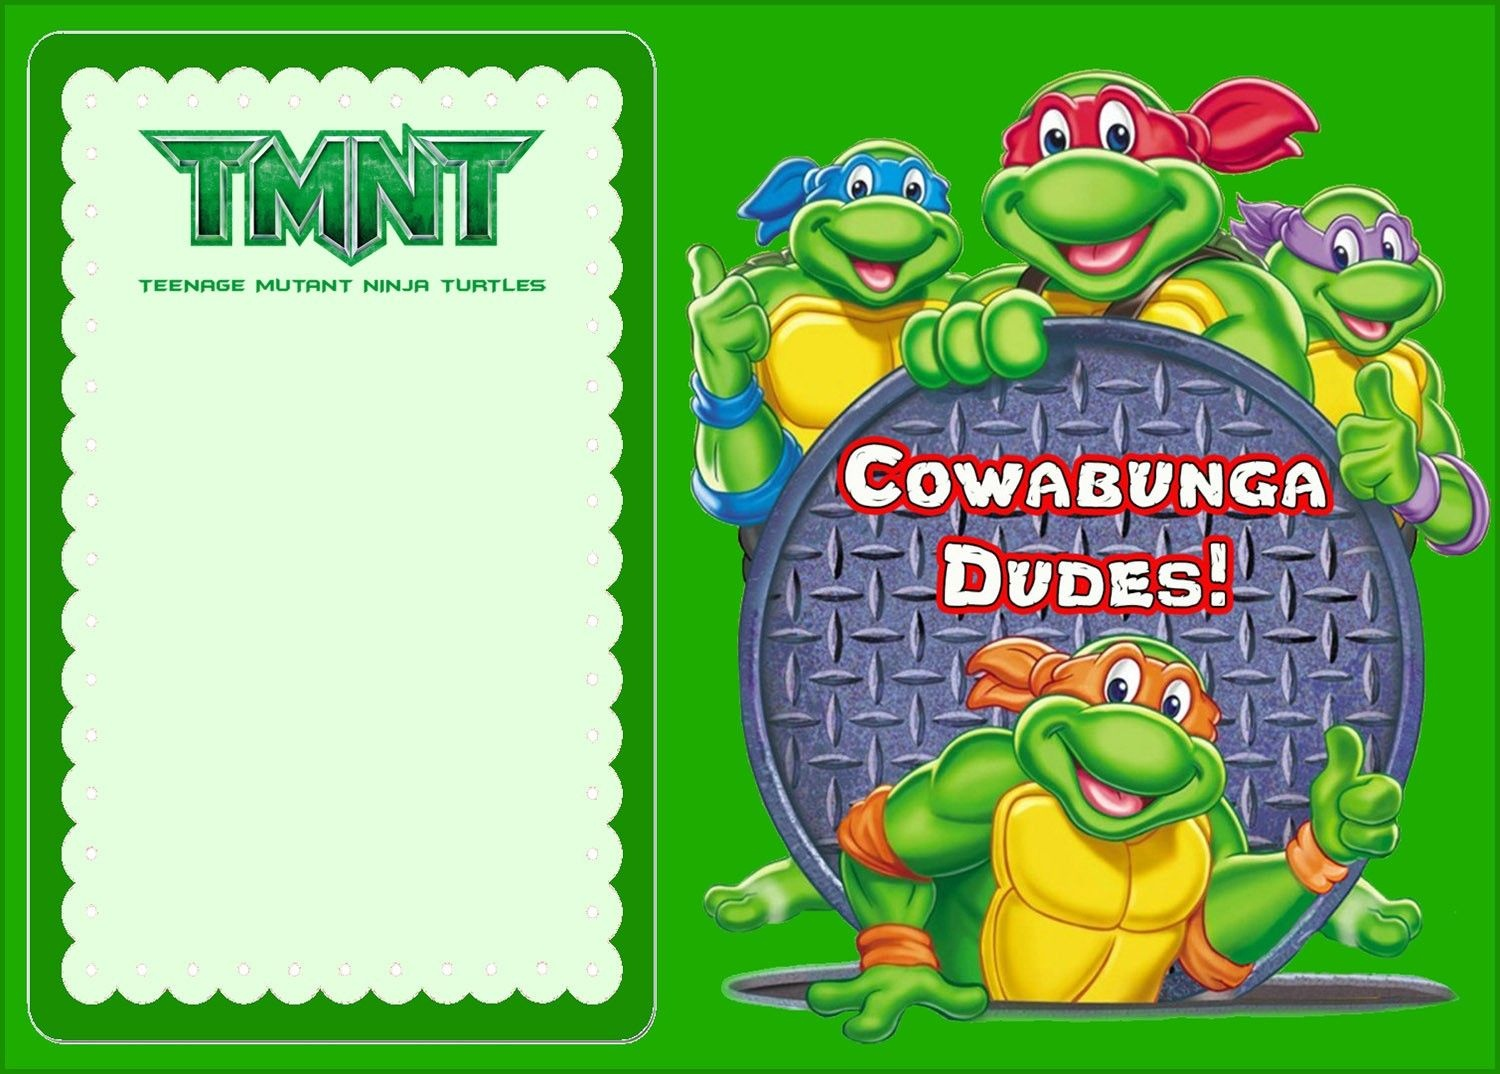 Free Online Ninja Turtle Invitation | Coolest Invitation Templates - Free Printable Tmnt Birthday Party Invitations